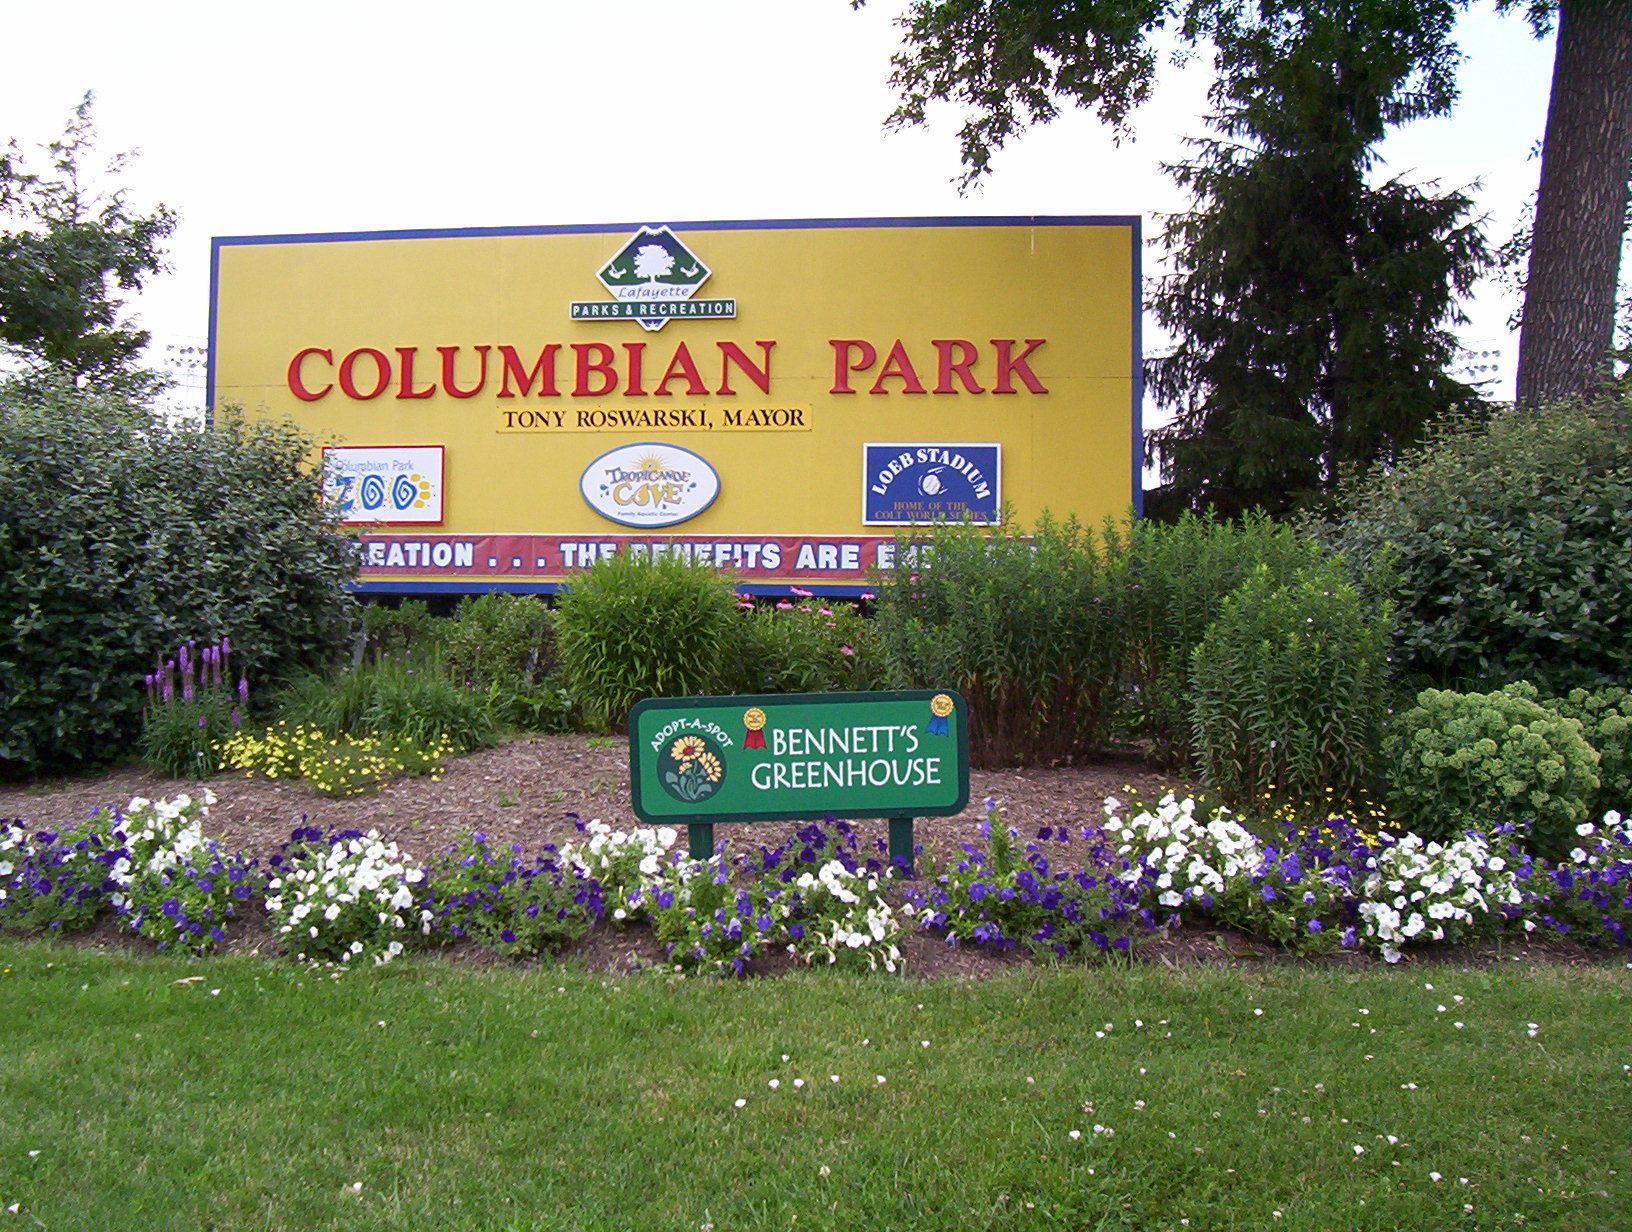 Columbian Park Sign